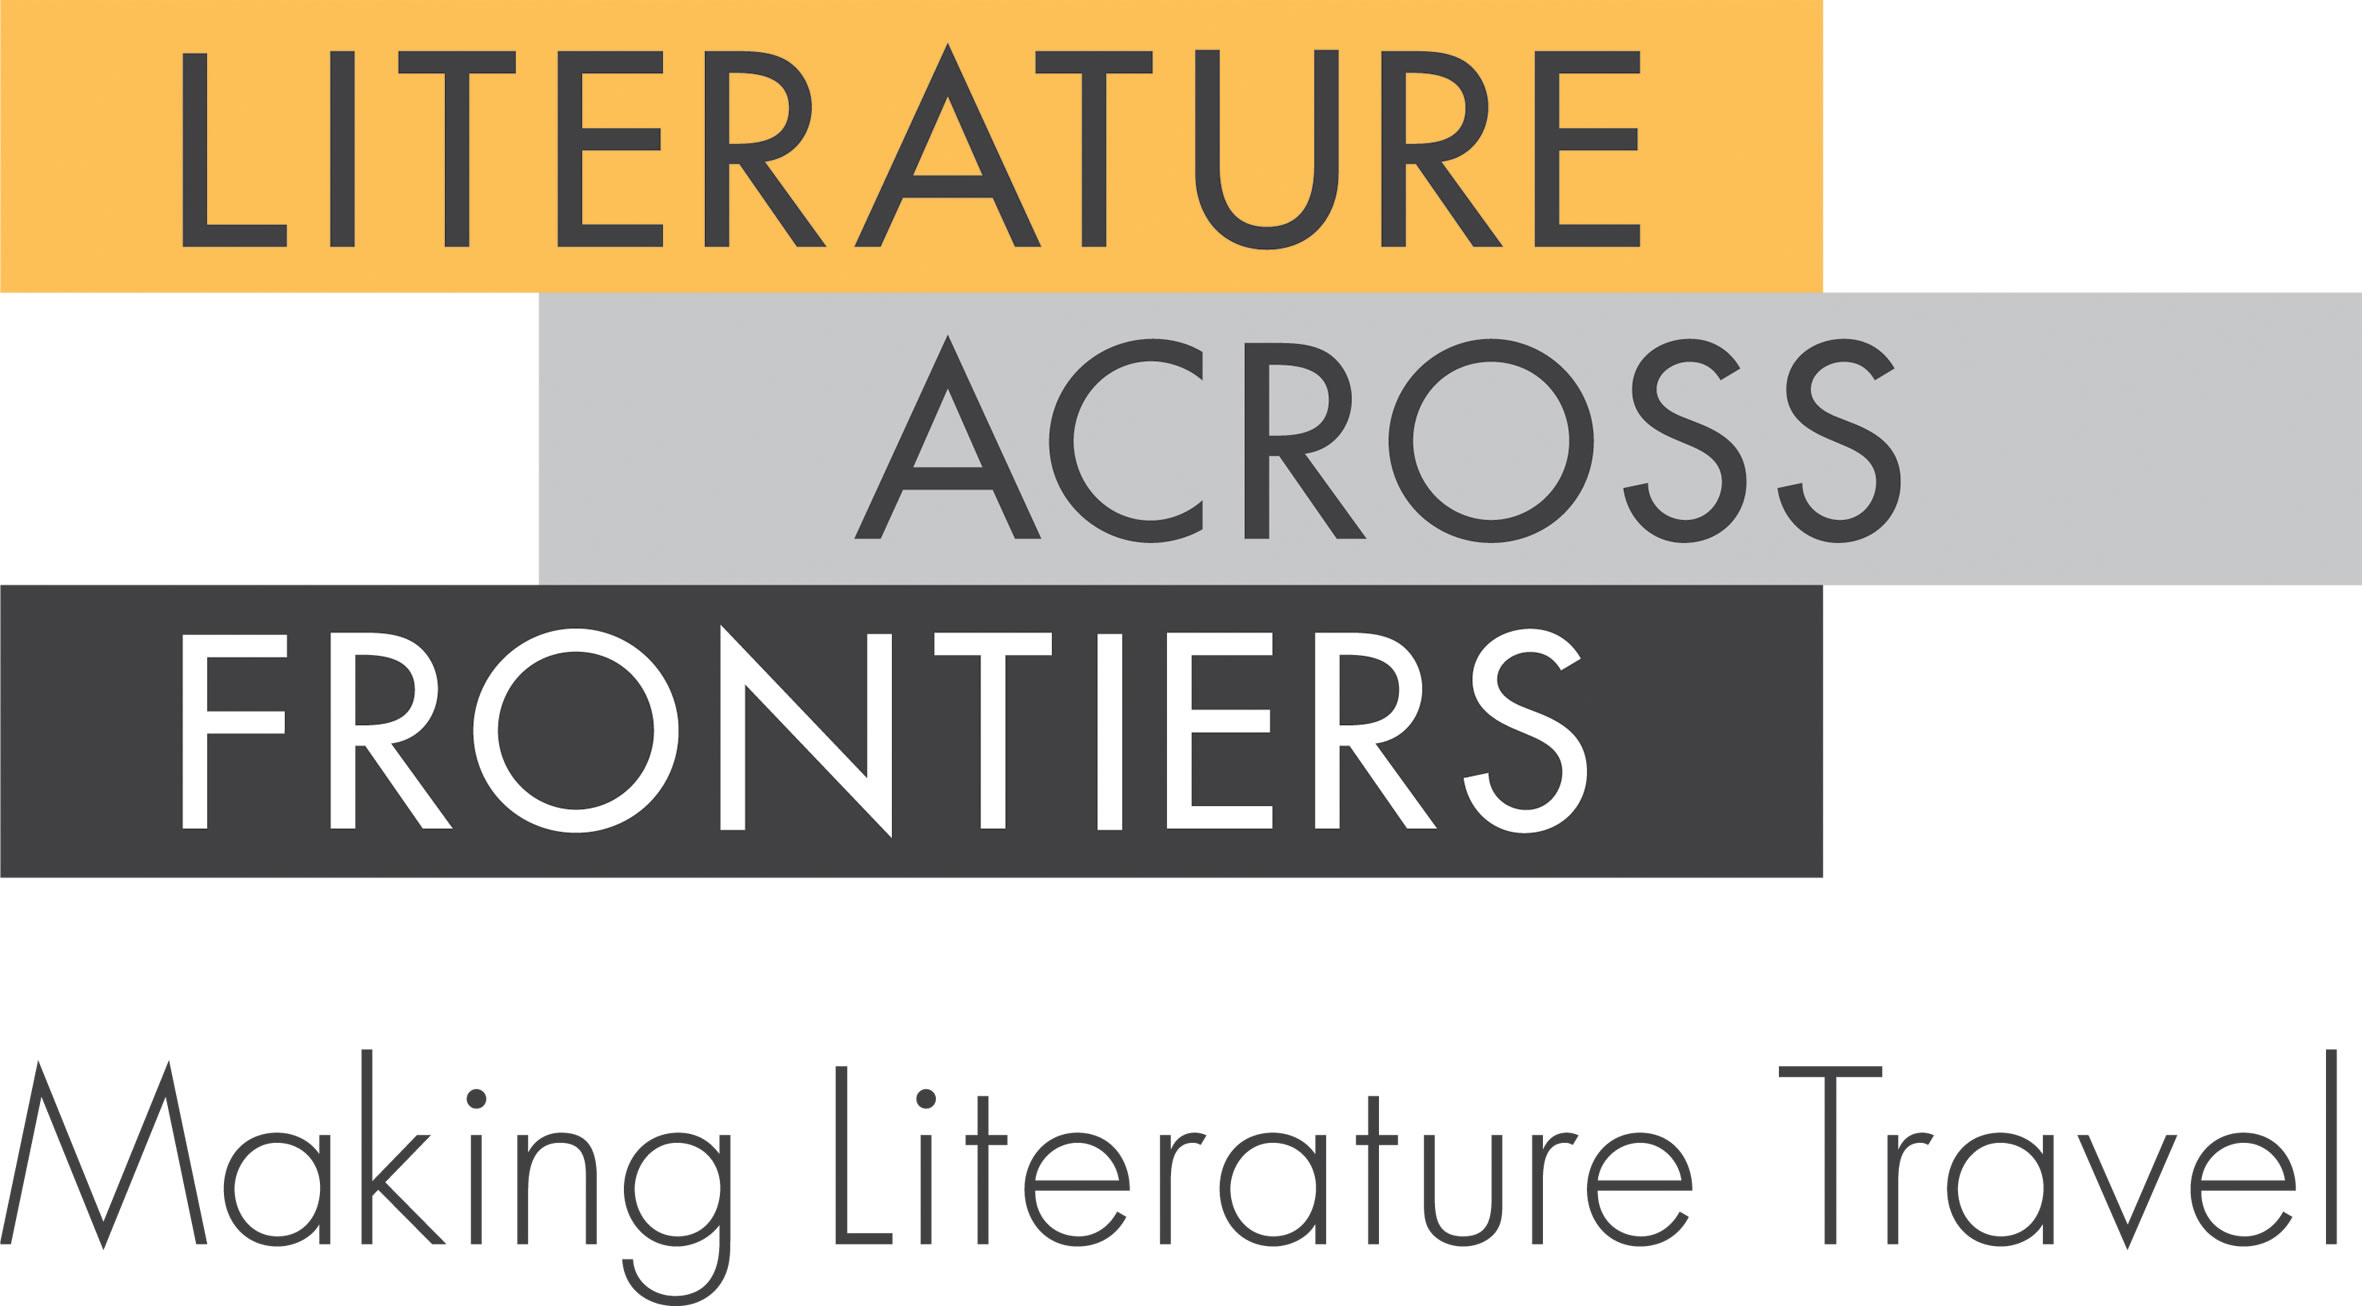 Logo of LAF - Literature Across Frontiers